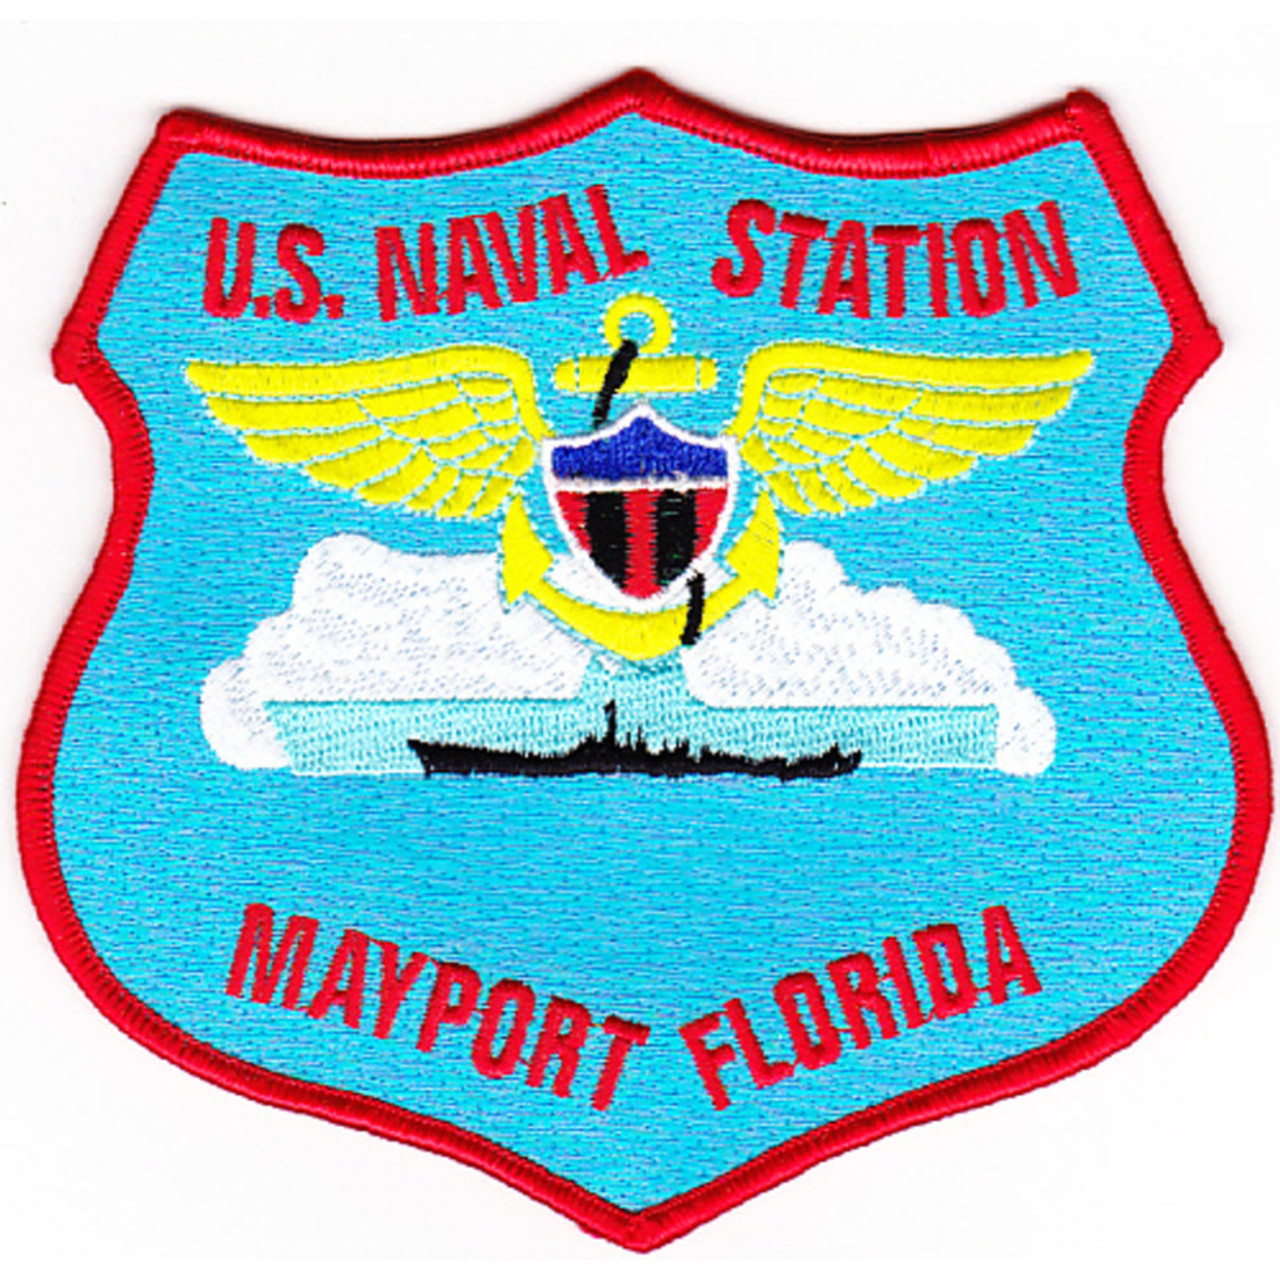 US Navy Base Patch,Mayport Naval Station Florida Y